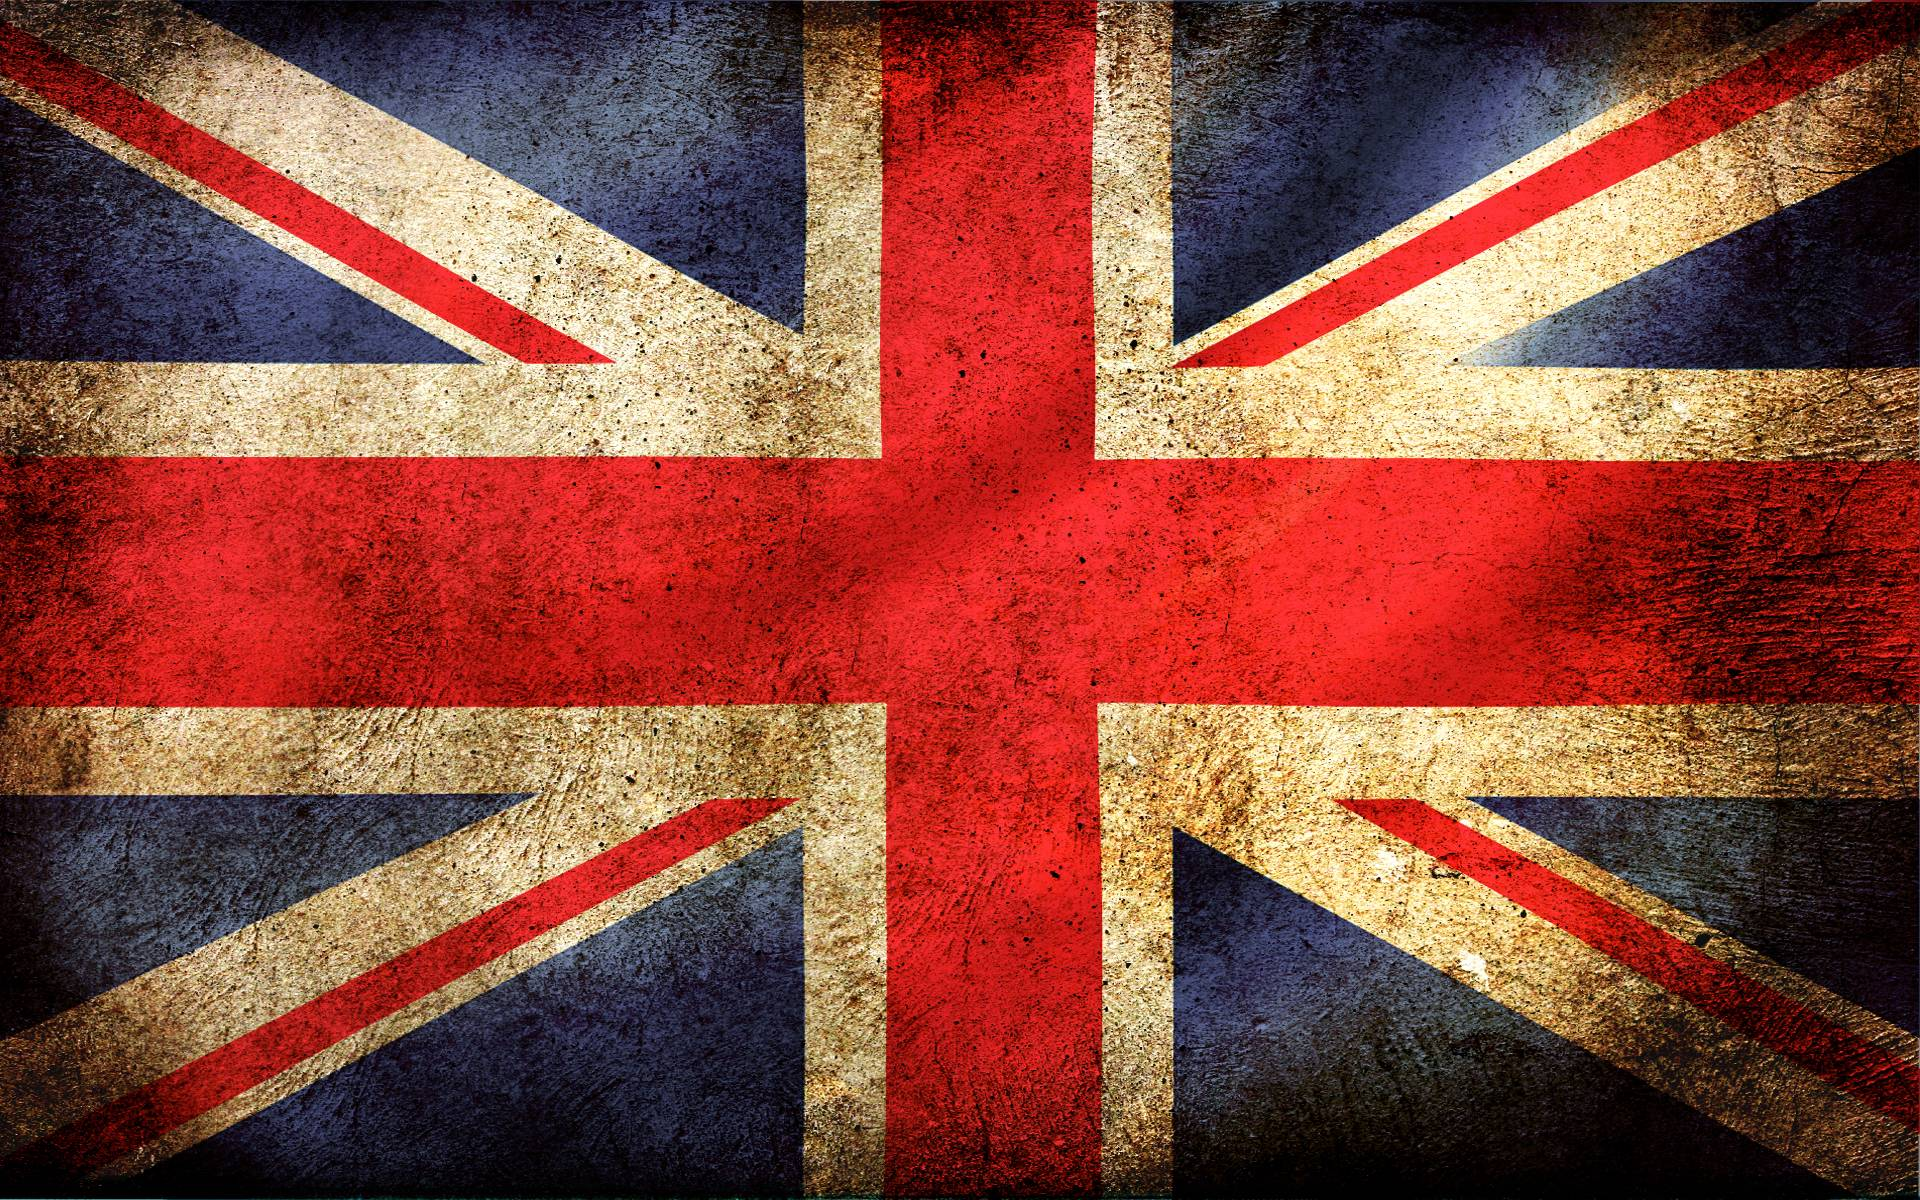 wallpapers backgrounds british - photo #8